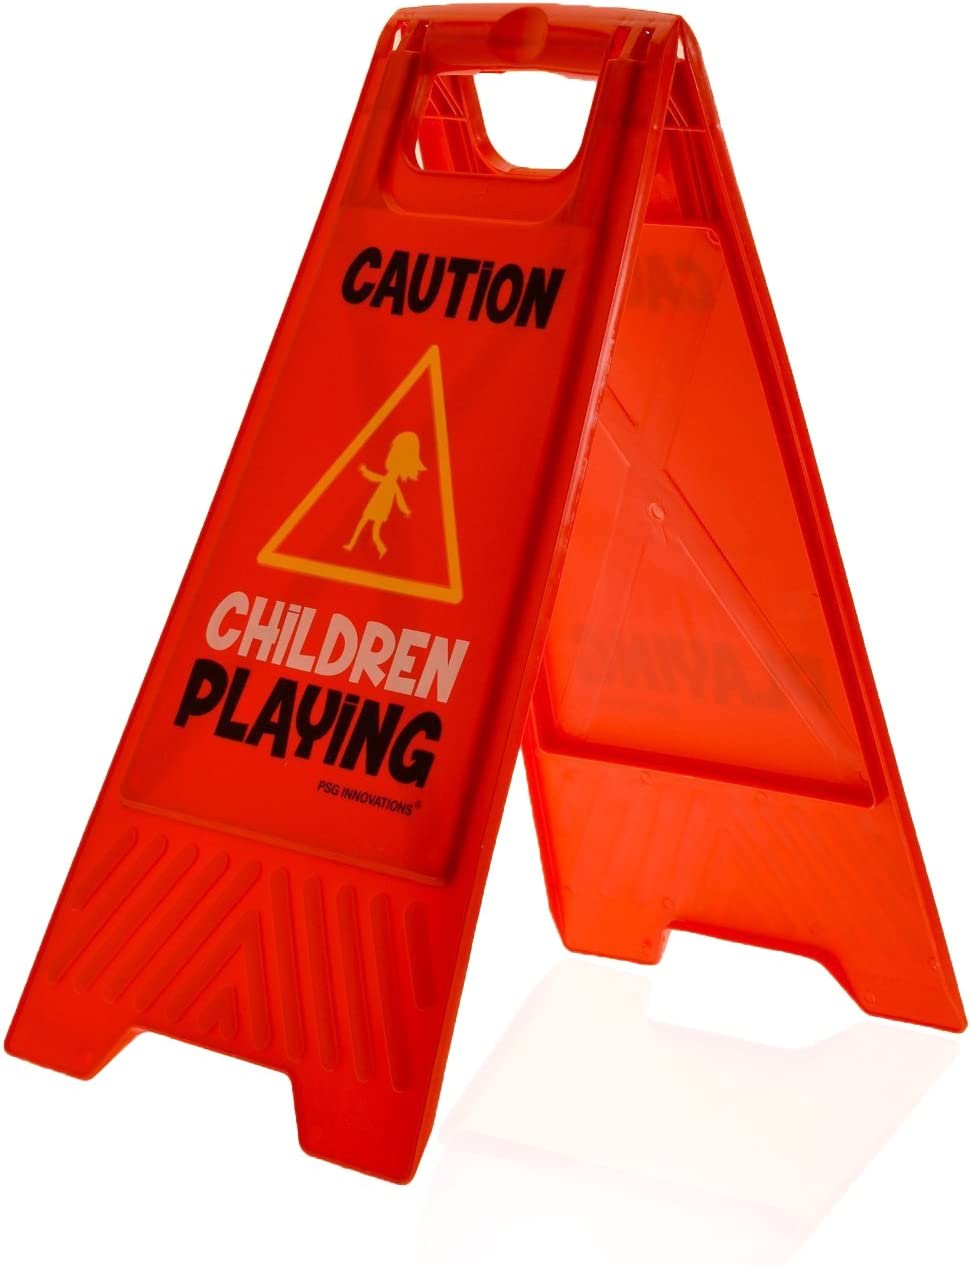 Children Playing Double-Sided, Red Children Playing Yard and Driveway Caution Sign - Caution